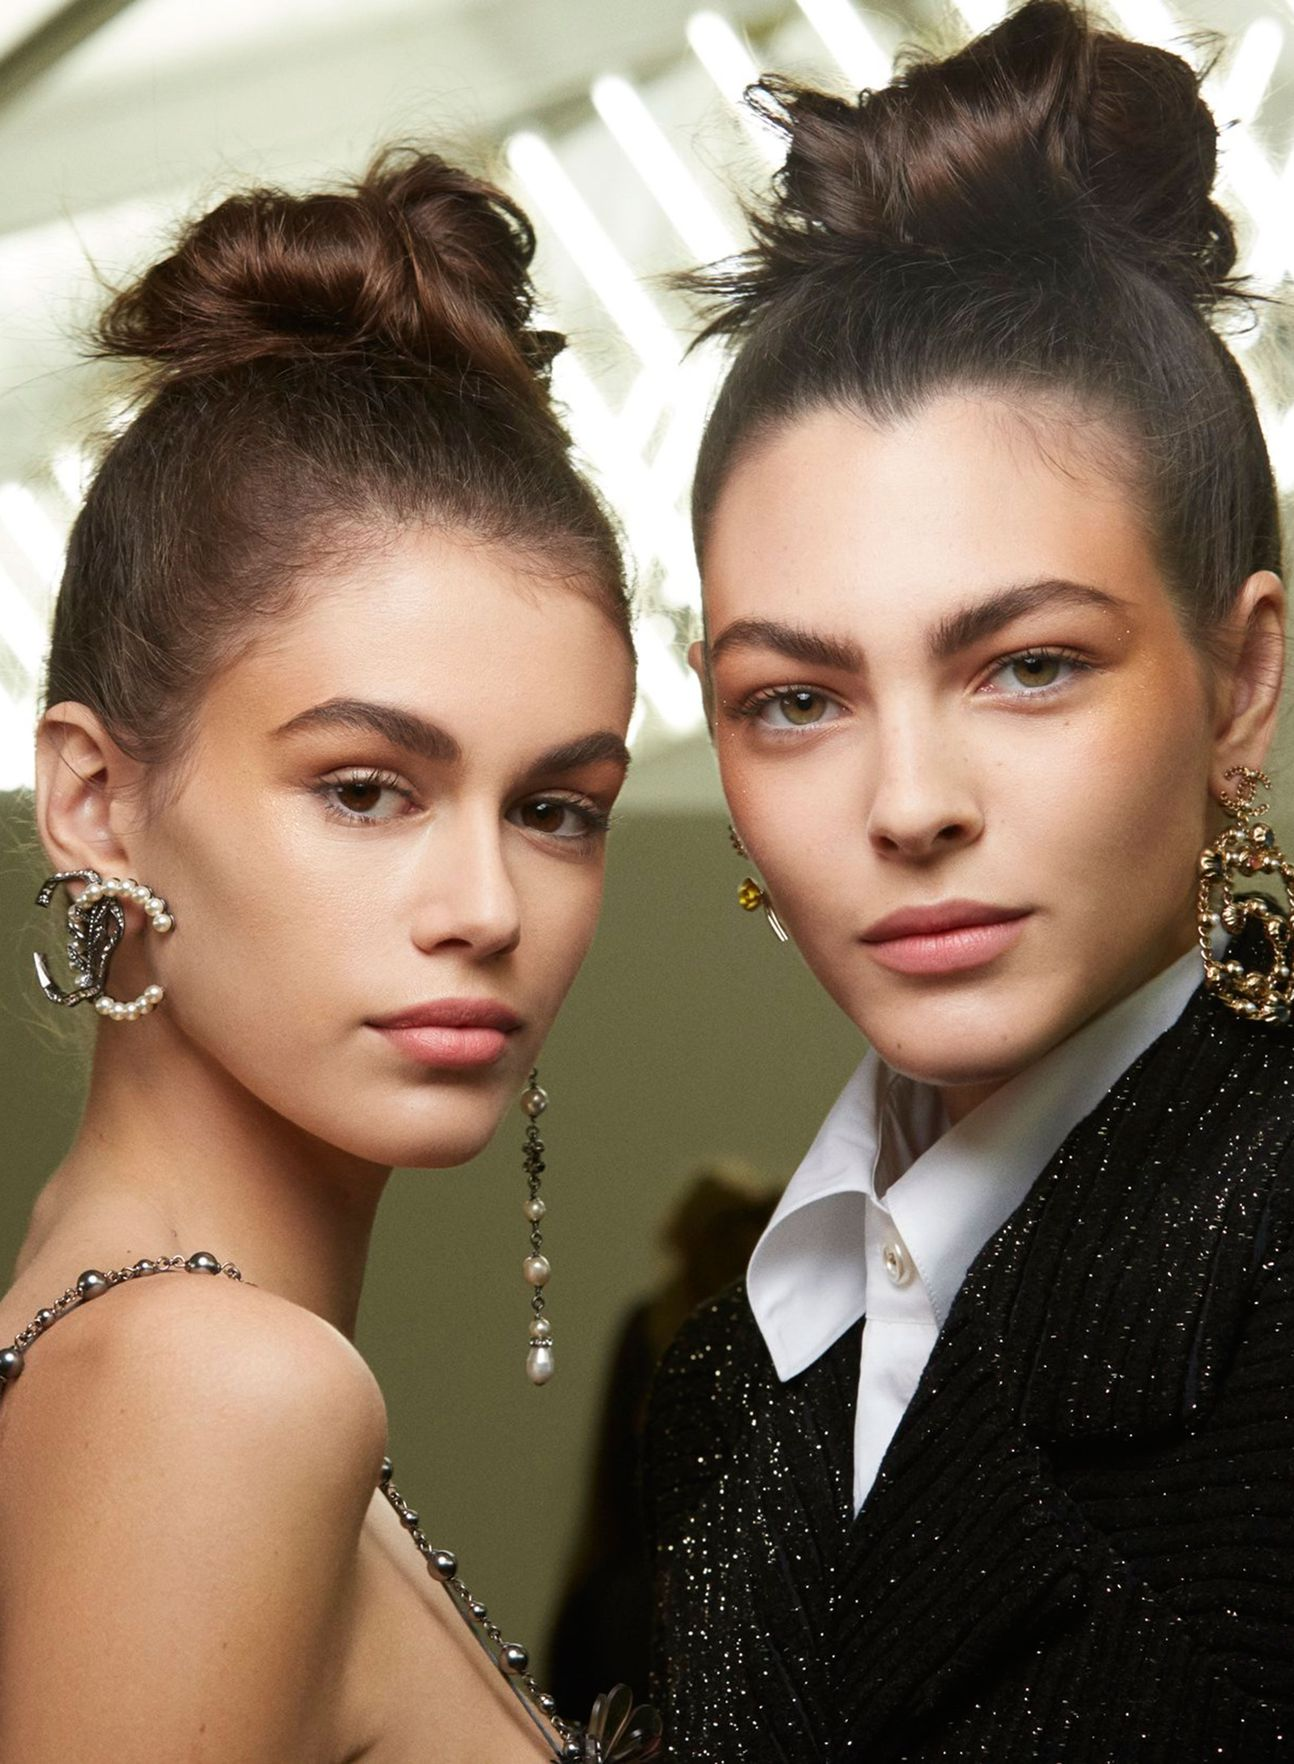 Chanel high updo hairstyles 2019 winter